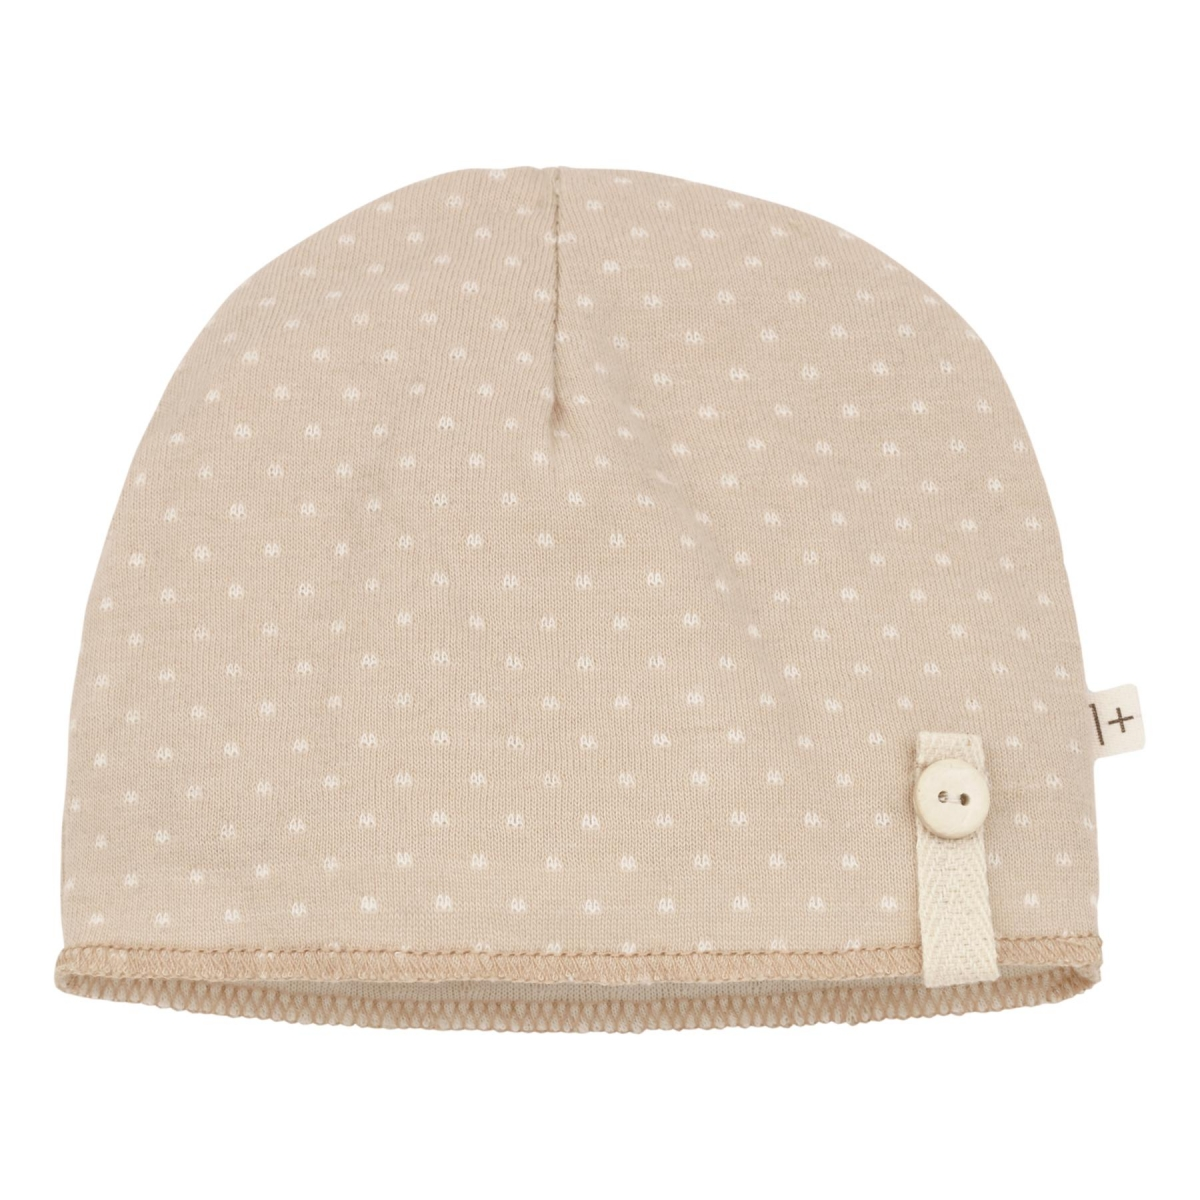 1 + in the family - Elise Beanie Beige - 1